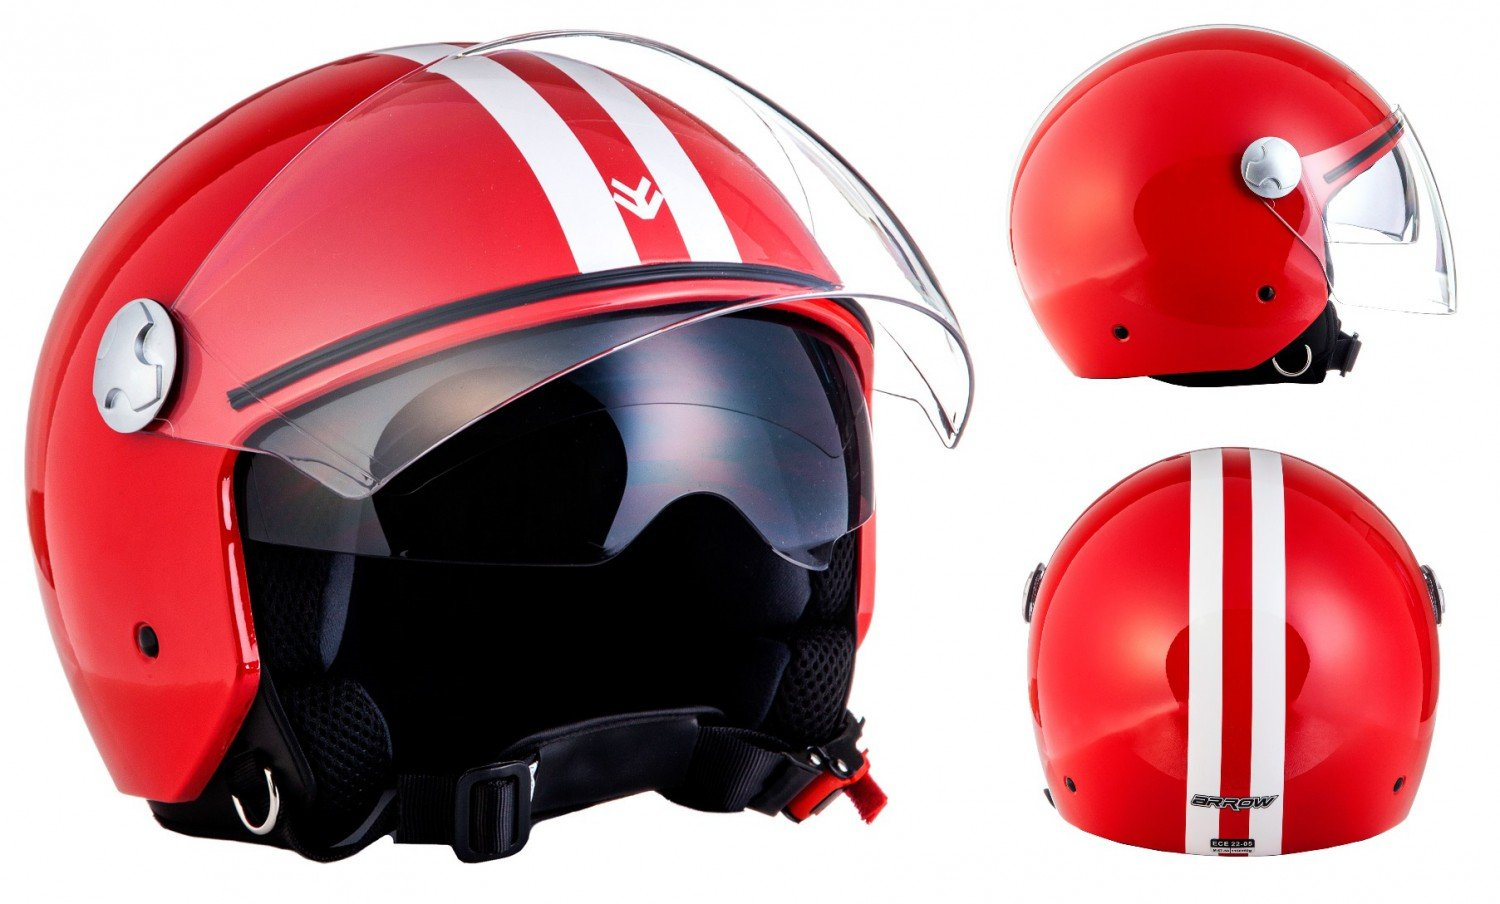 "/· Casque Moto Jet /· Demi Jet Helmet Retro Cruiser Chopper Scooter /· ECE certifi/é /· Separate Visors /· Click-n-Secure/™ Clip /· Sac fourre-tout /&m black Armor /· AV-63 /""Fun Shiny Black/"""